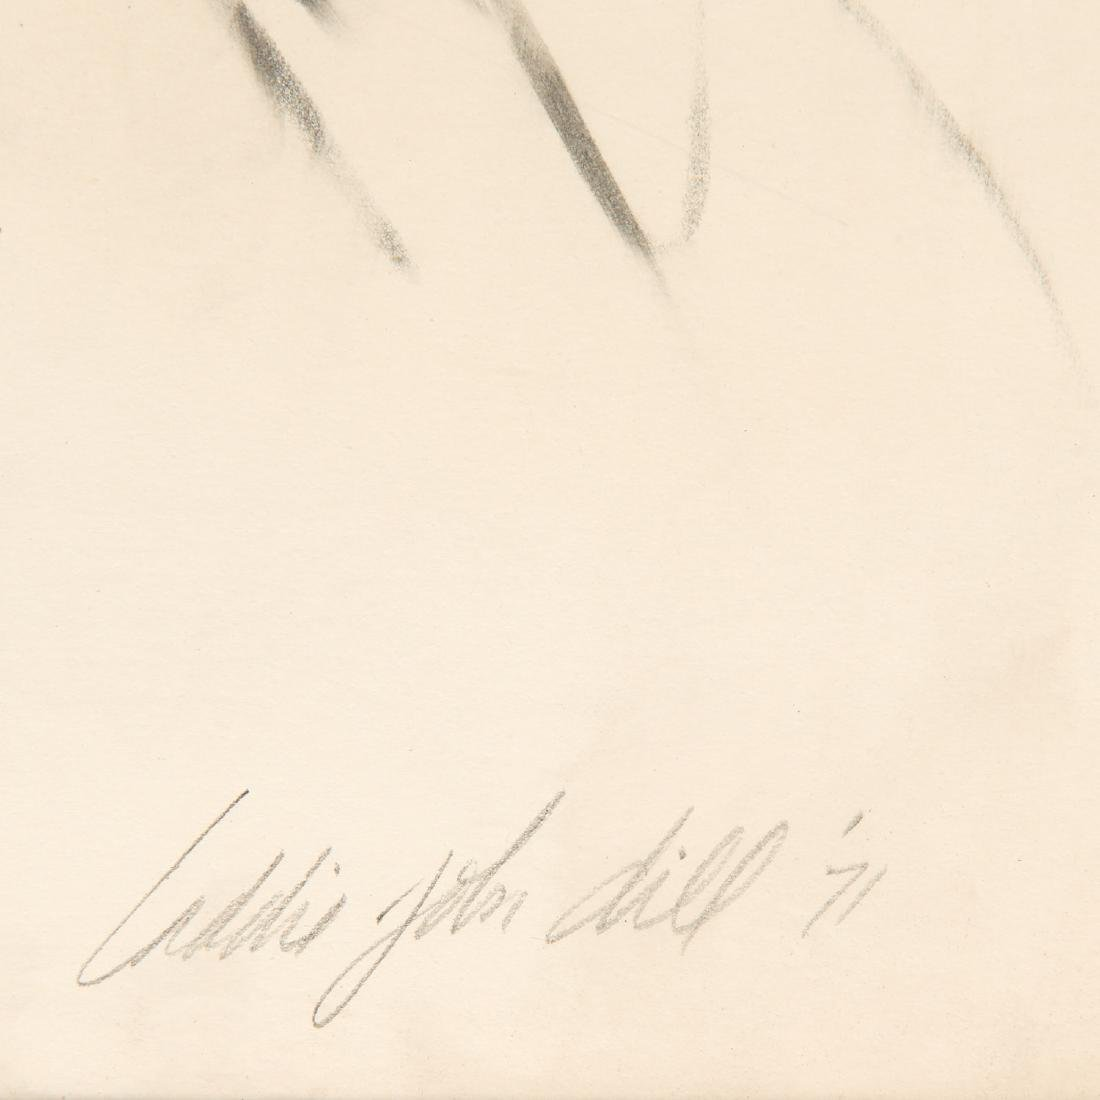 Laddie John Dill, drawing - 2